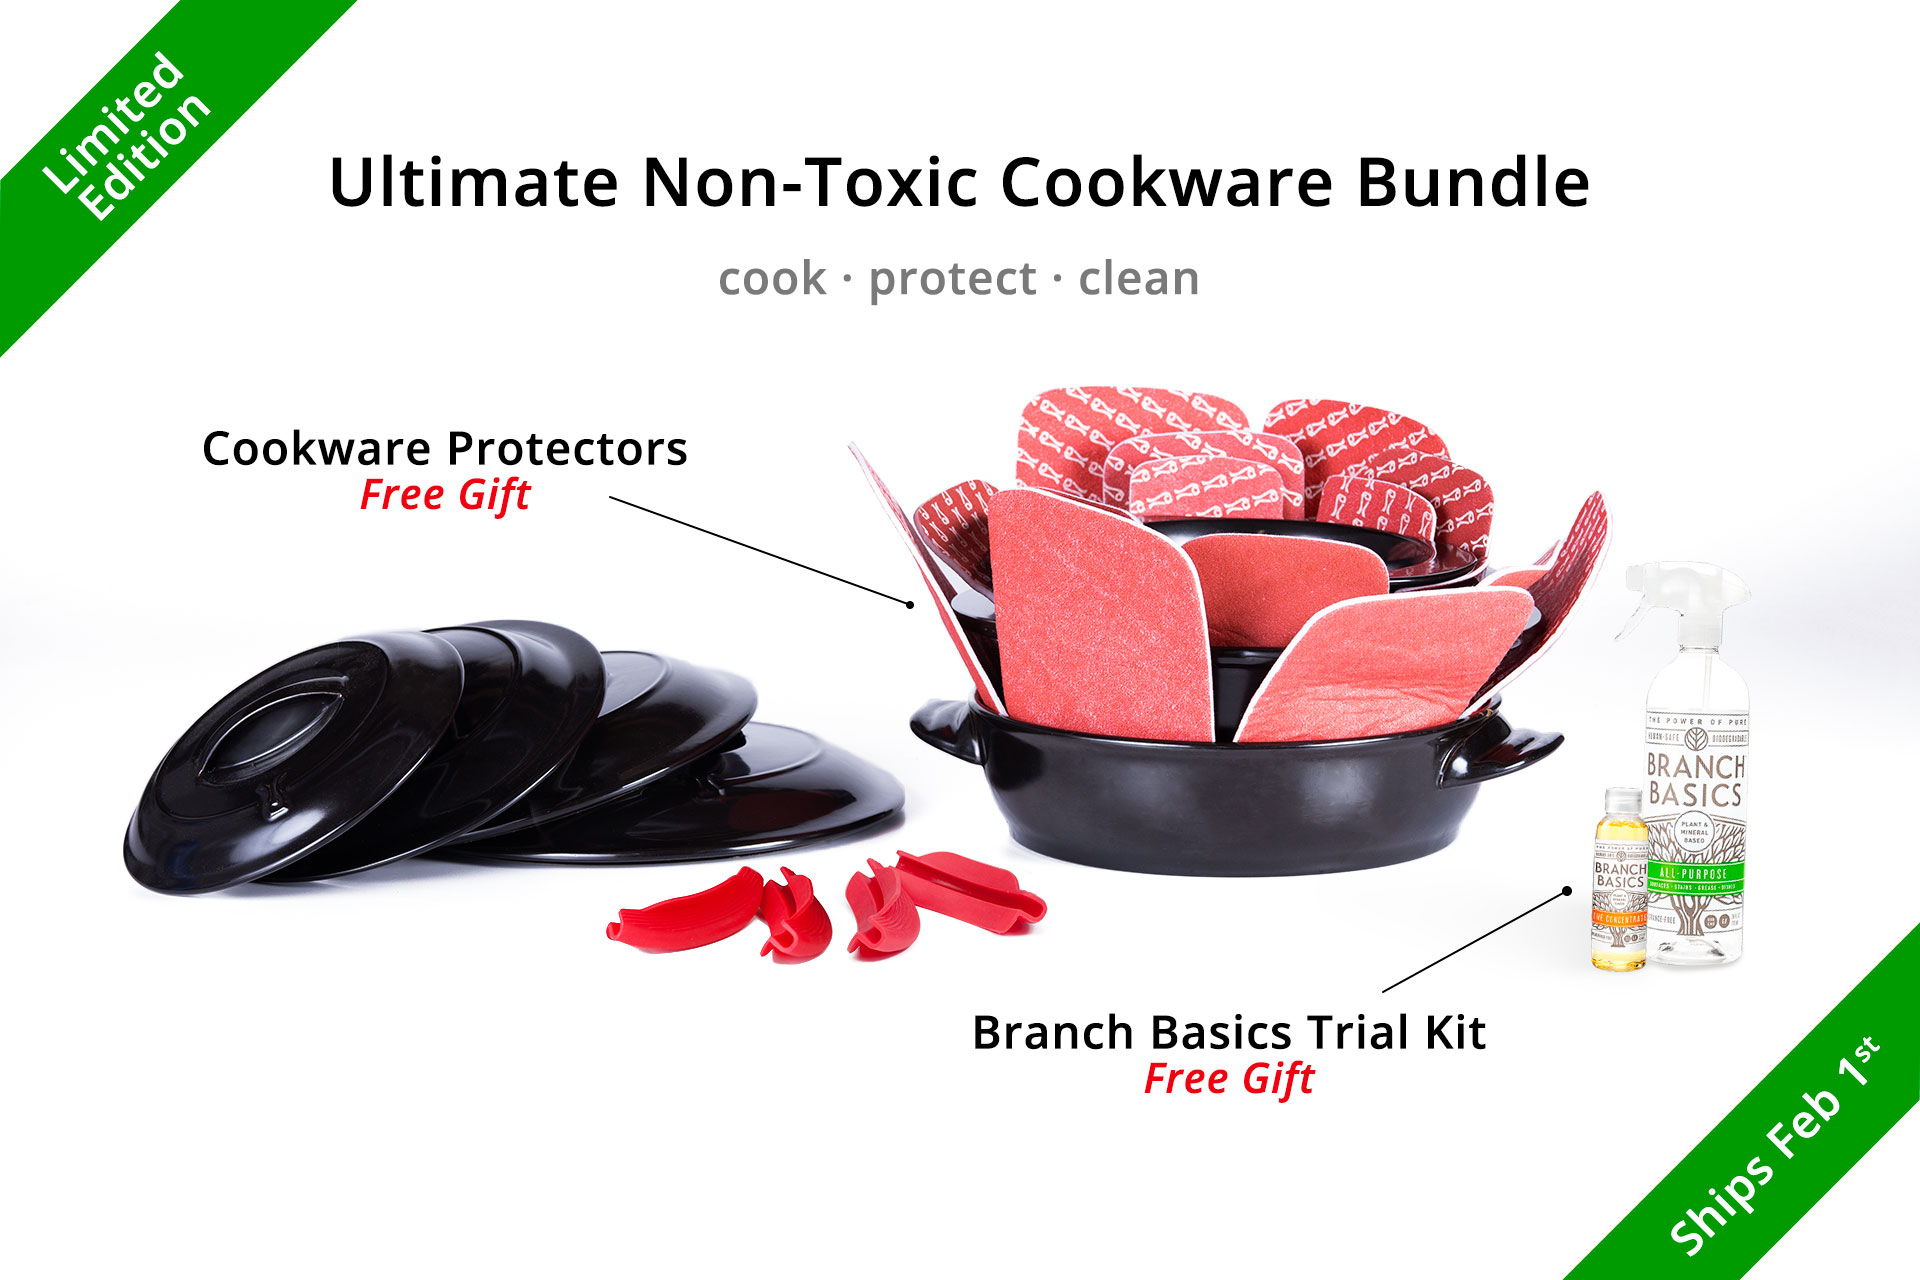 Ultimate Non-Toxic Cookware Bundle